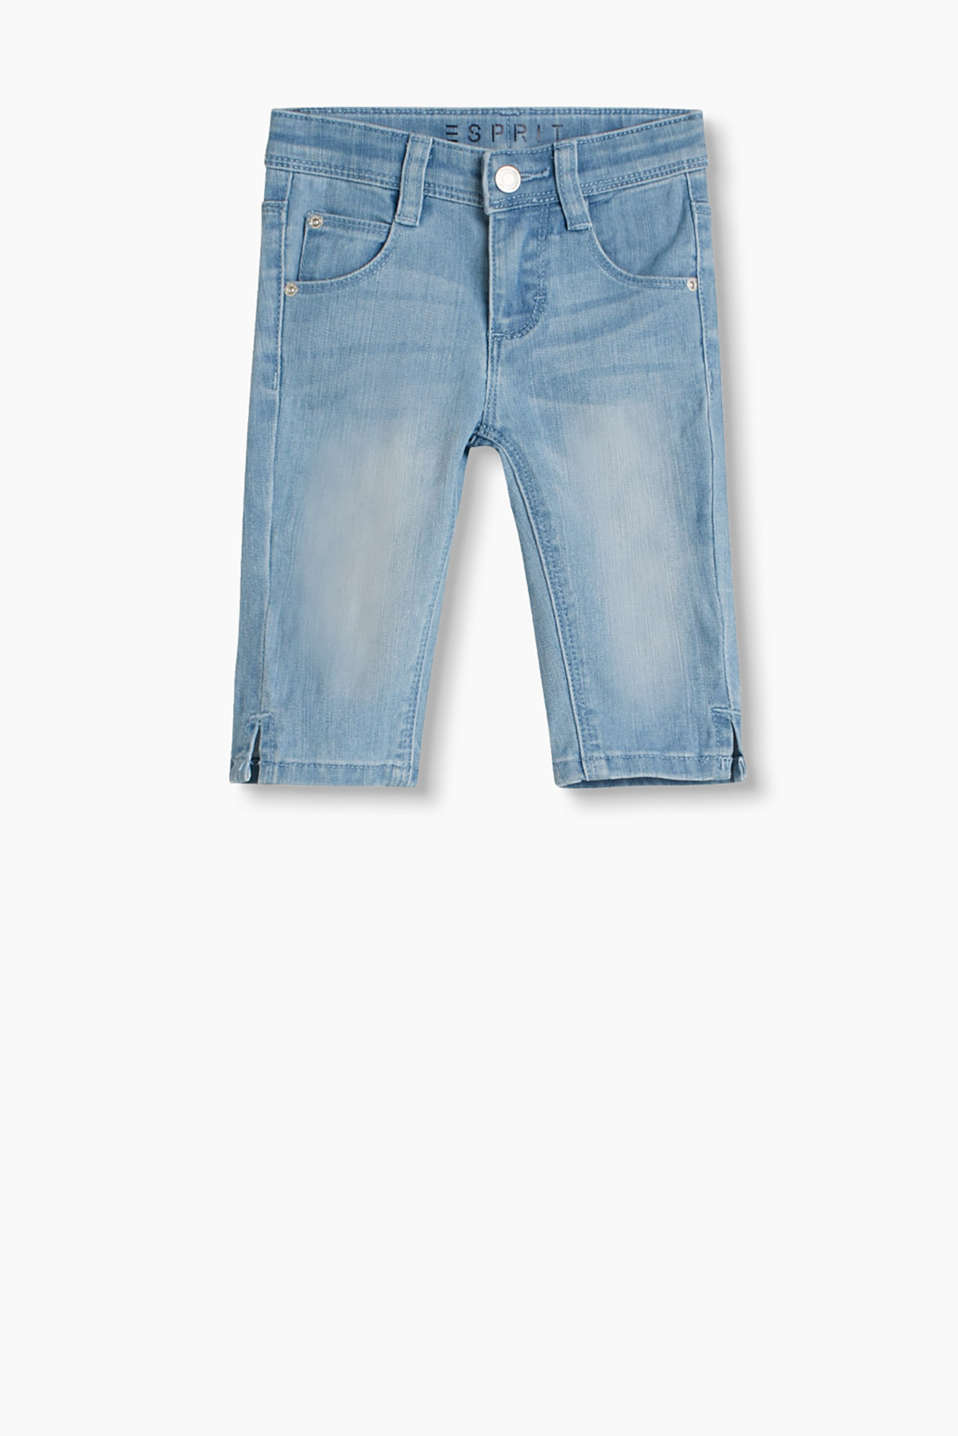 5 pocket jeans in a summery Capri length and pale wash with an adjustable waistband